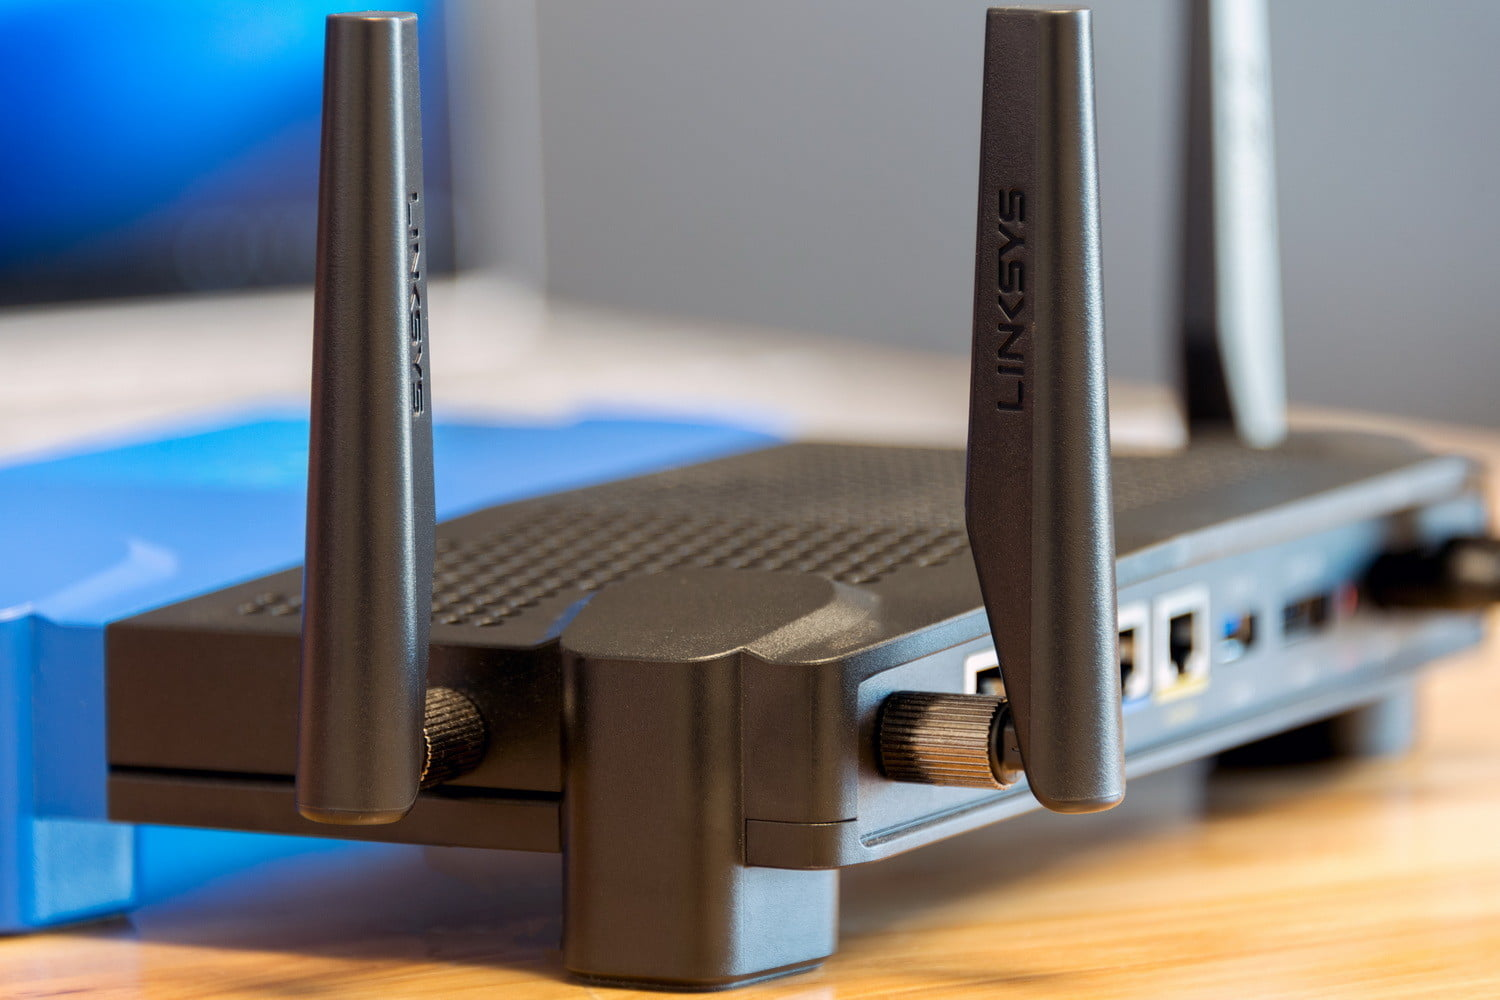 Hacker infects 100K routers in latest botnet attack aimed at sending email spam